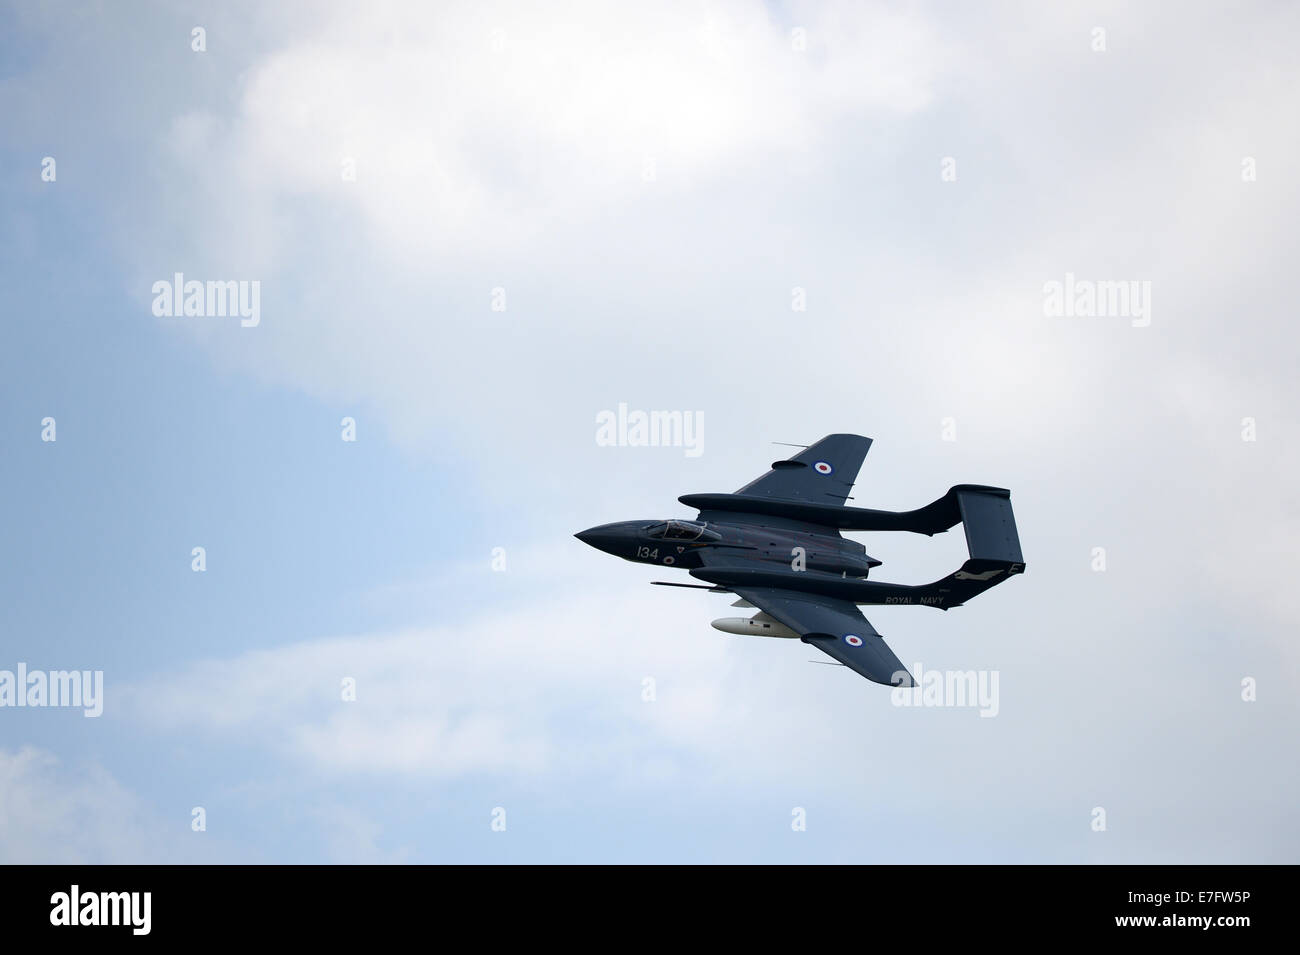 The last flying Sea Vixen aircraft in the skies above Yeovilton, Somerset, UK for the handover from Julian James. - Stock Image